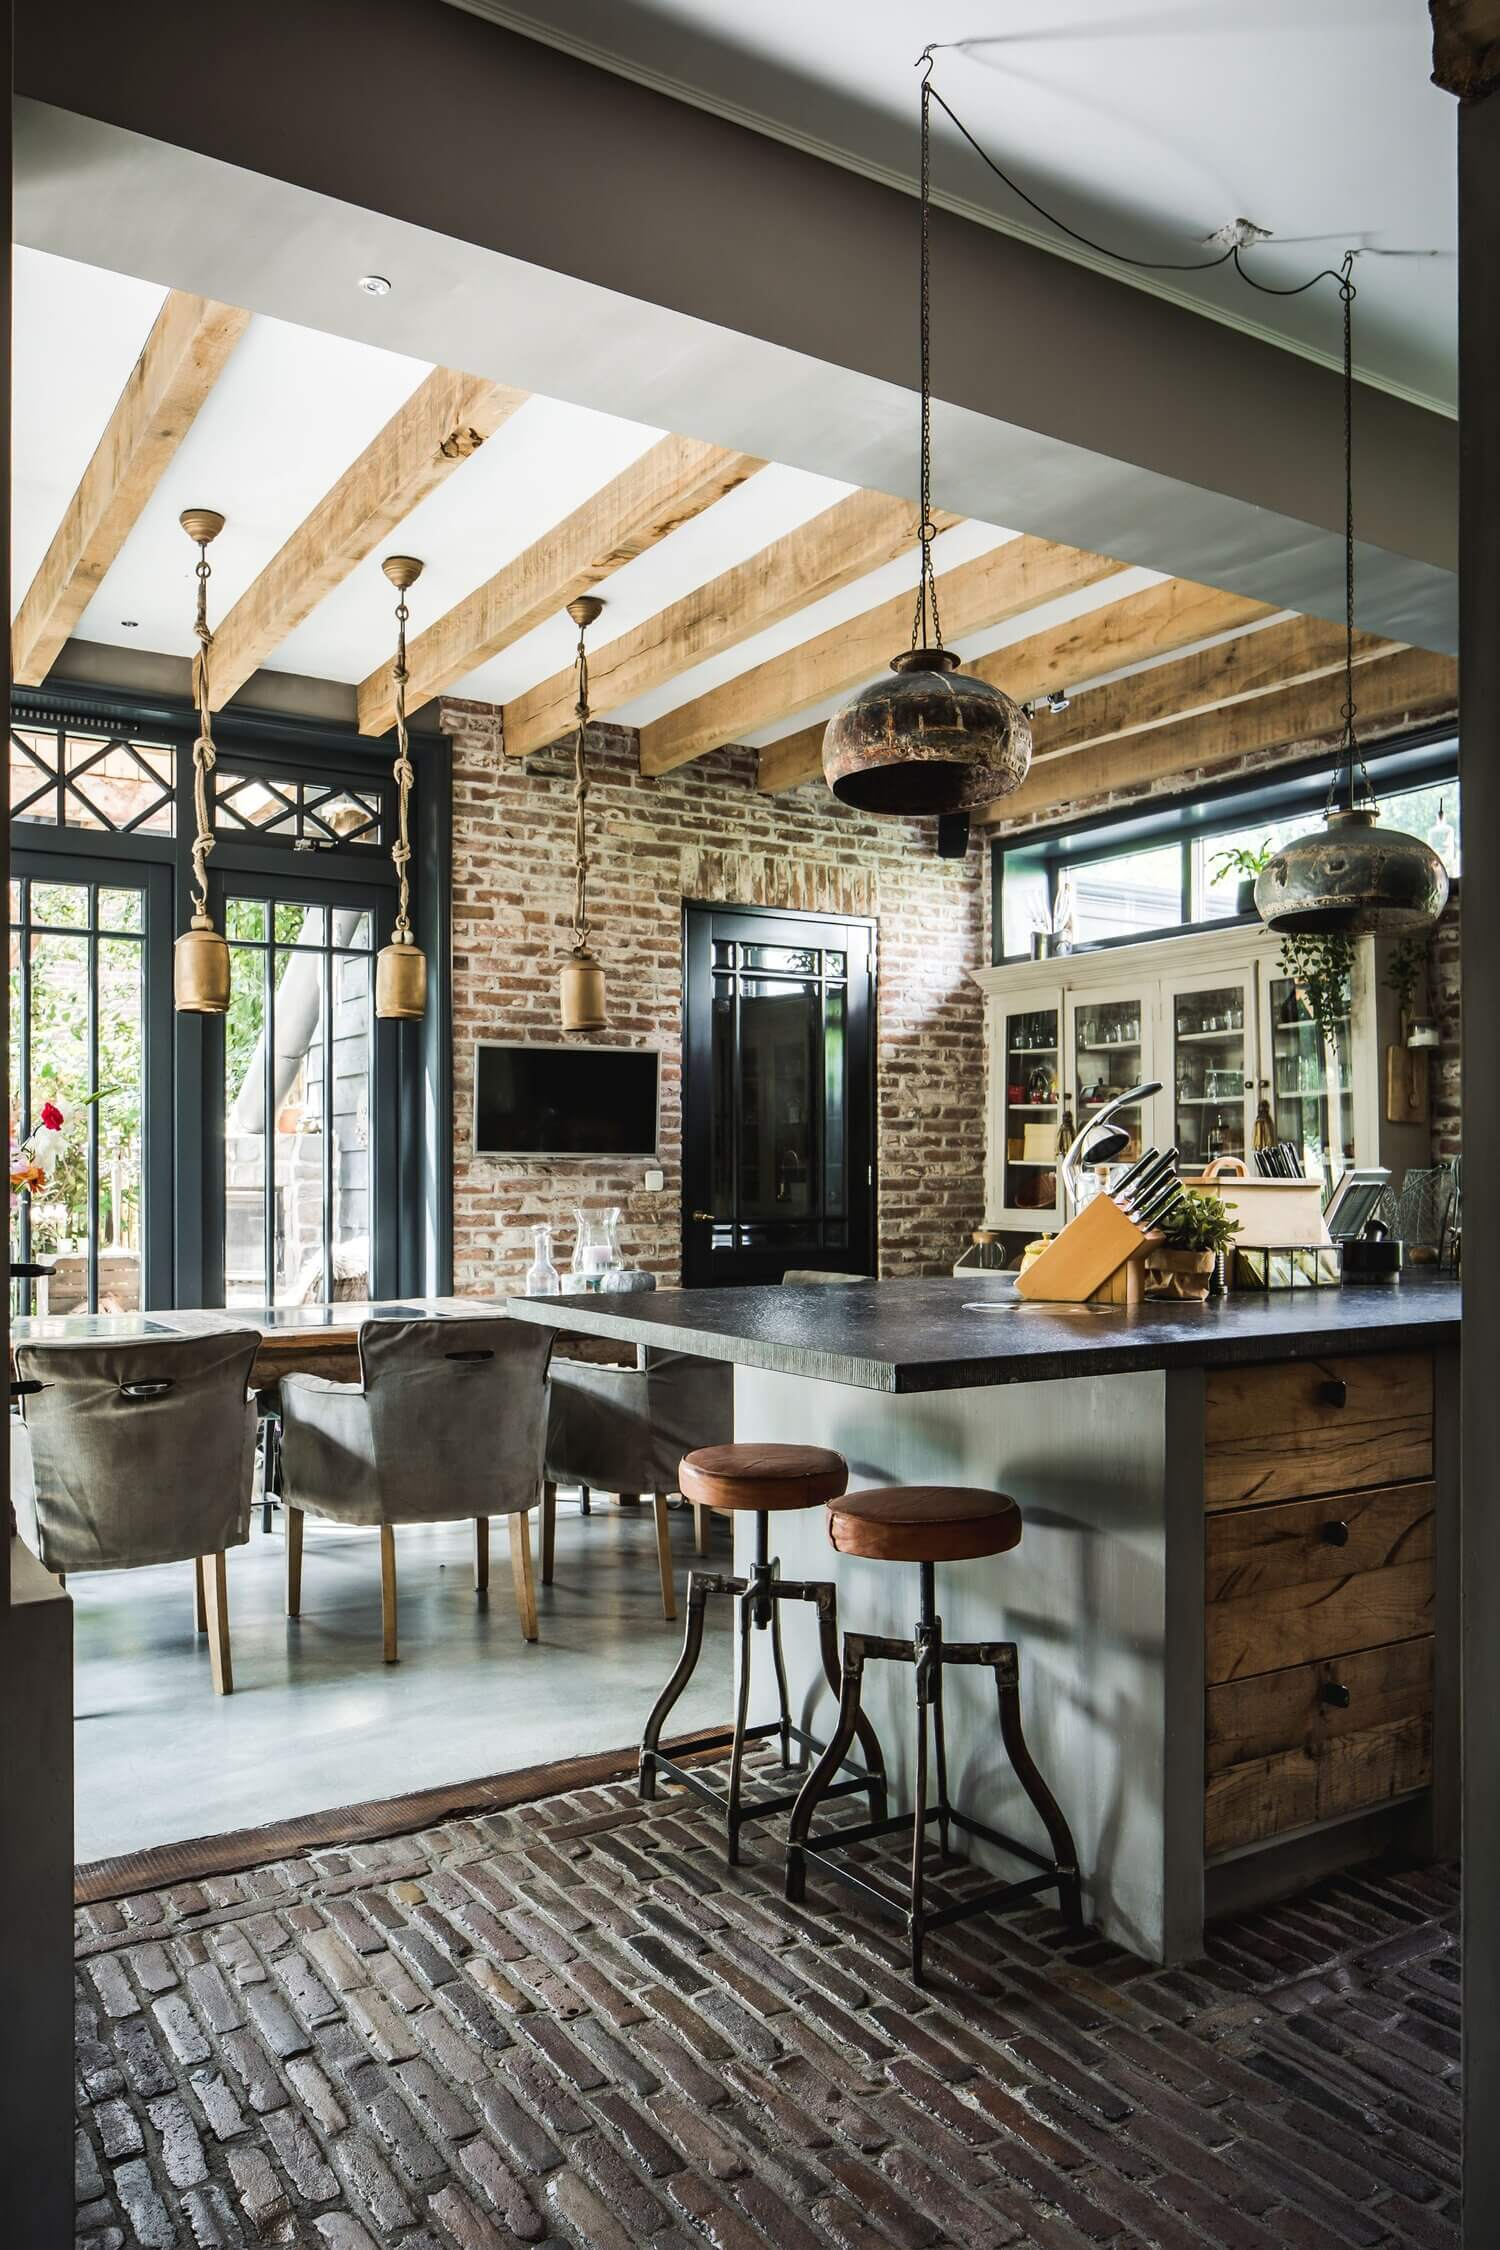 A Warm Rustic Historic Home in The Netherlands